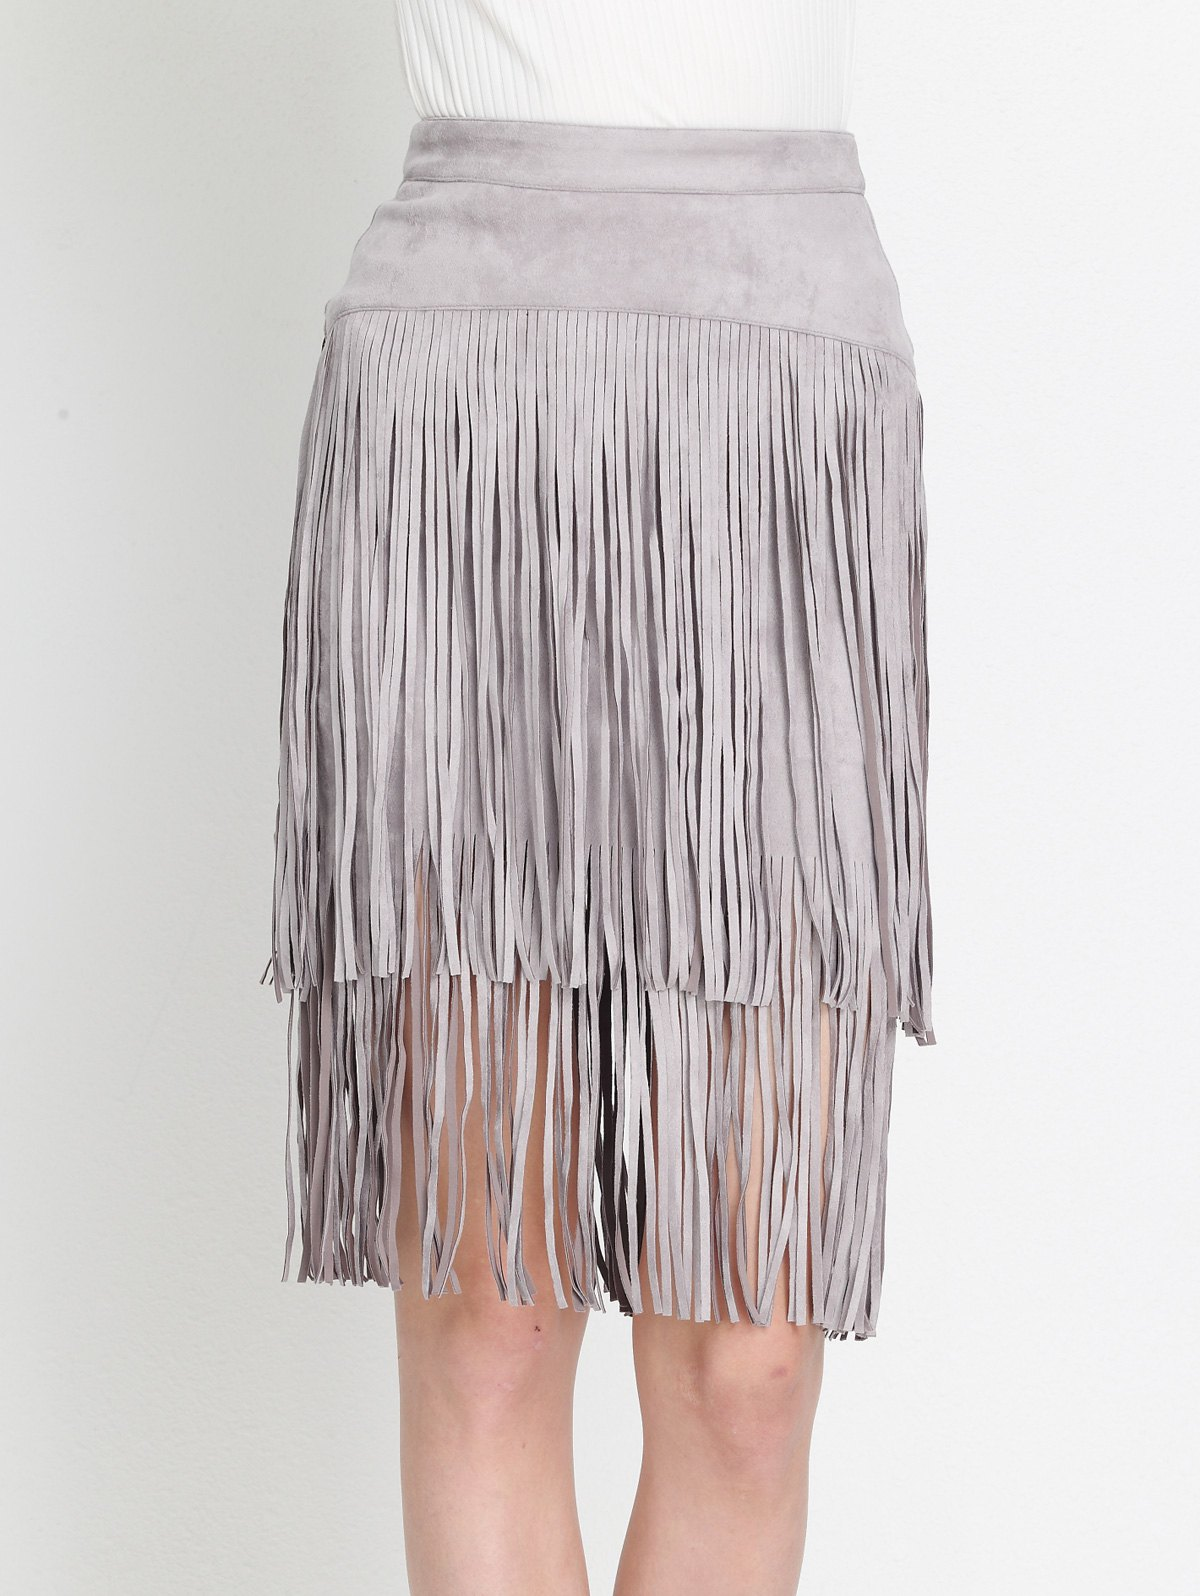 High Waist Tiered Fringed Suede Skirt - GRAY M